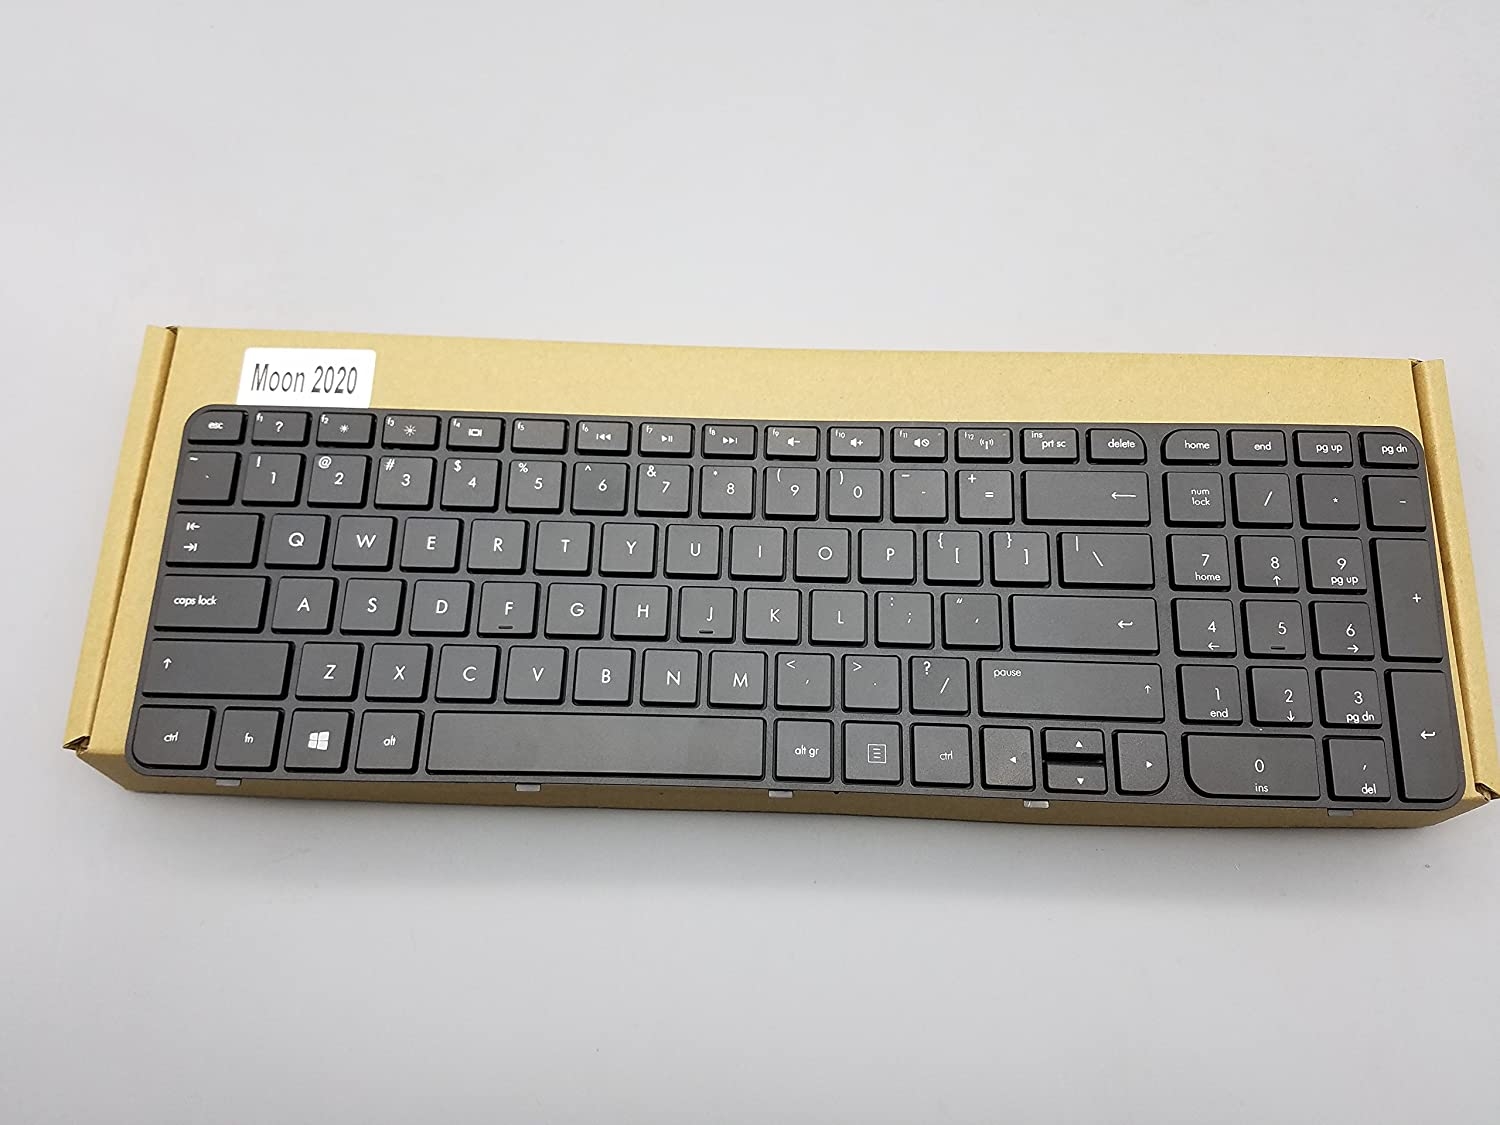 Replacement Keyboard for HP Pavilion g7-2000 g7-2100 g7z-2100 CTO g7-2200 g7z-2200 CTO g7-2300 Series Laptop With Frame